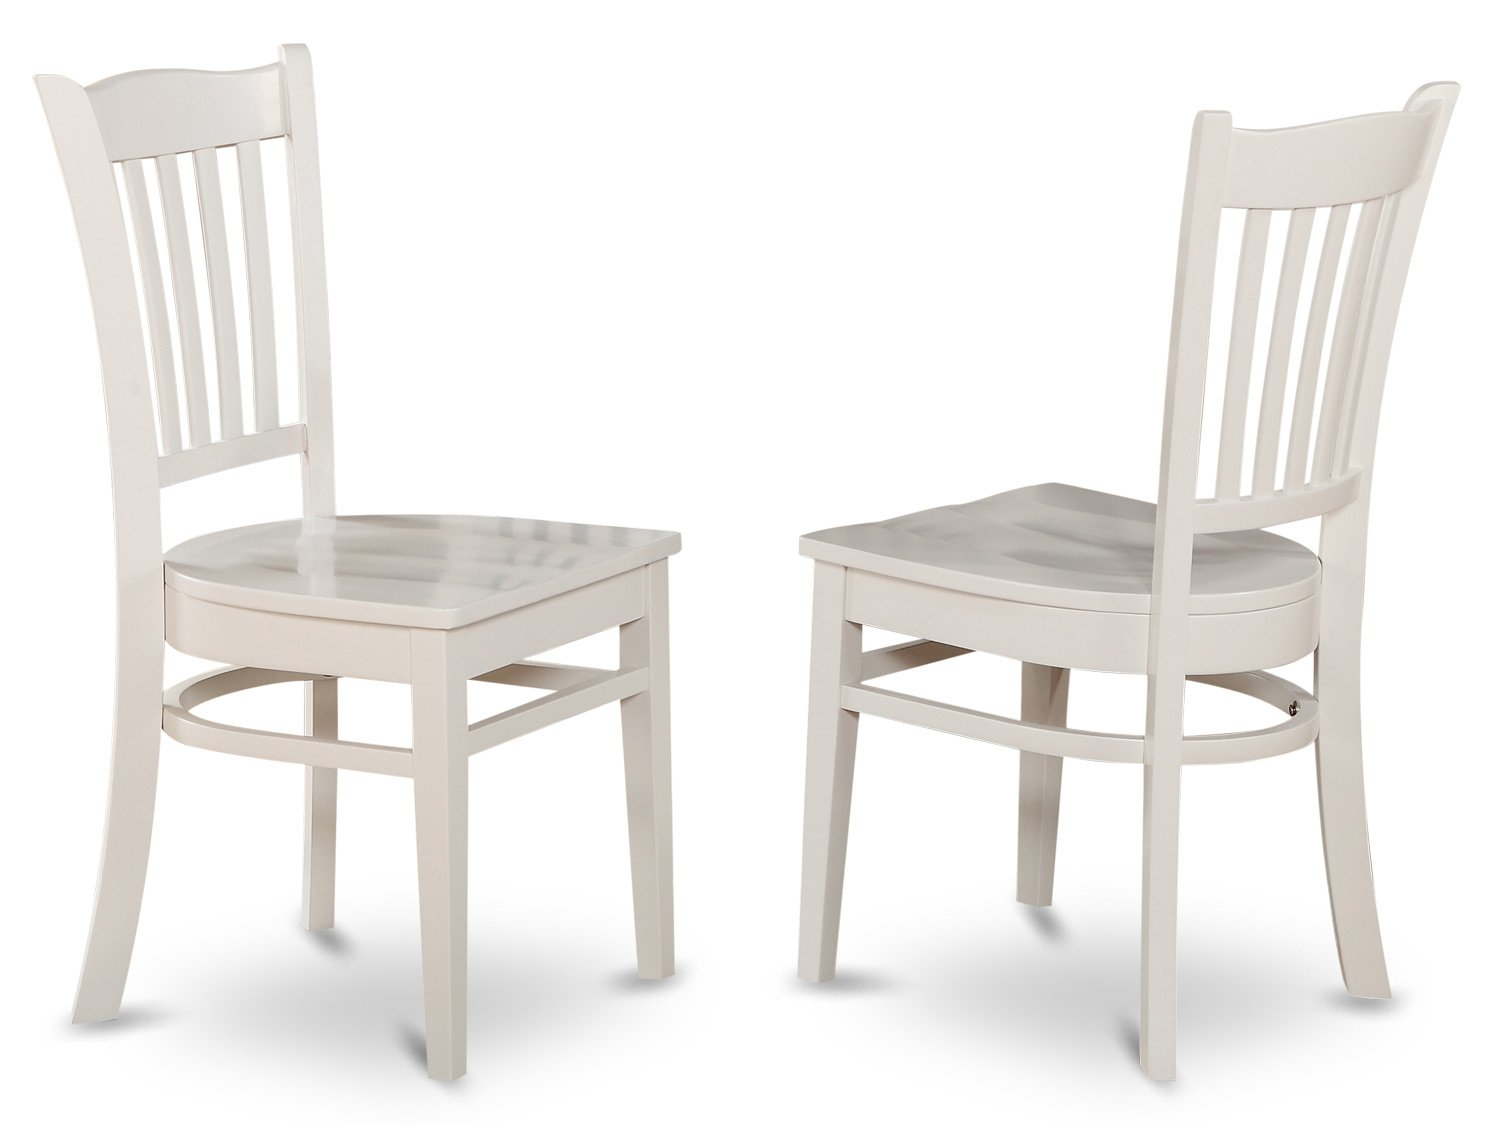 white wood dining chairs Amazon.com: East West Furniture GRC WHI W Dining Chair Set with  white wood dining chairs